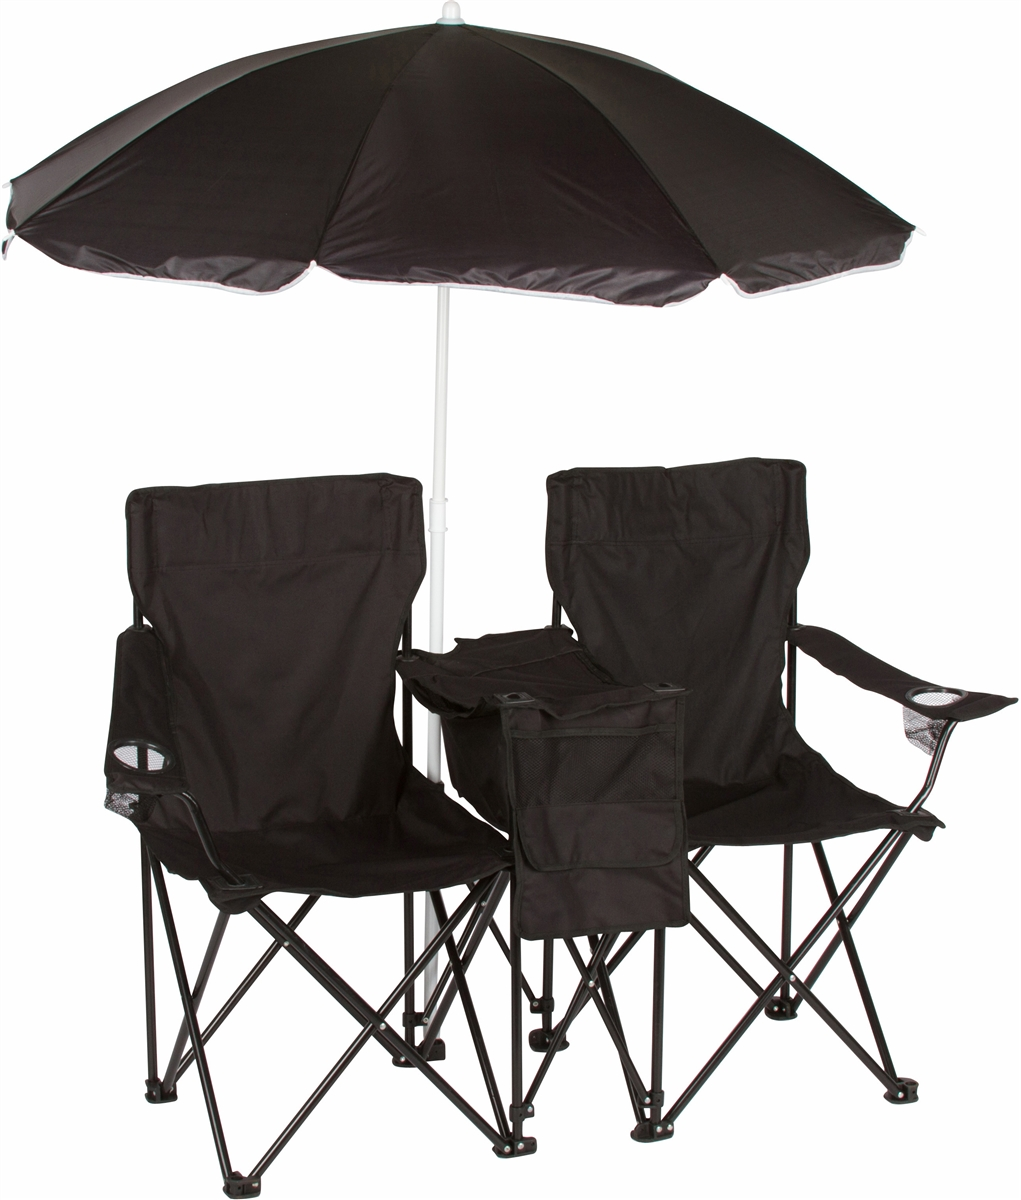 Chair beach umbrella and chair black and white - Double Folding Camp And Beach Chair With Removable Umbrella And Cooler By Trademark Innovations Black